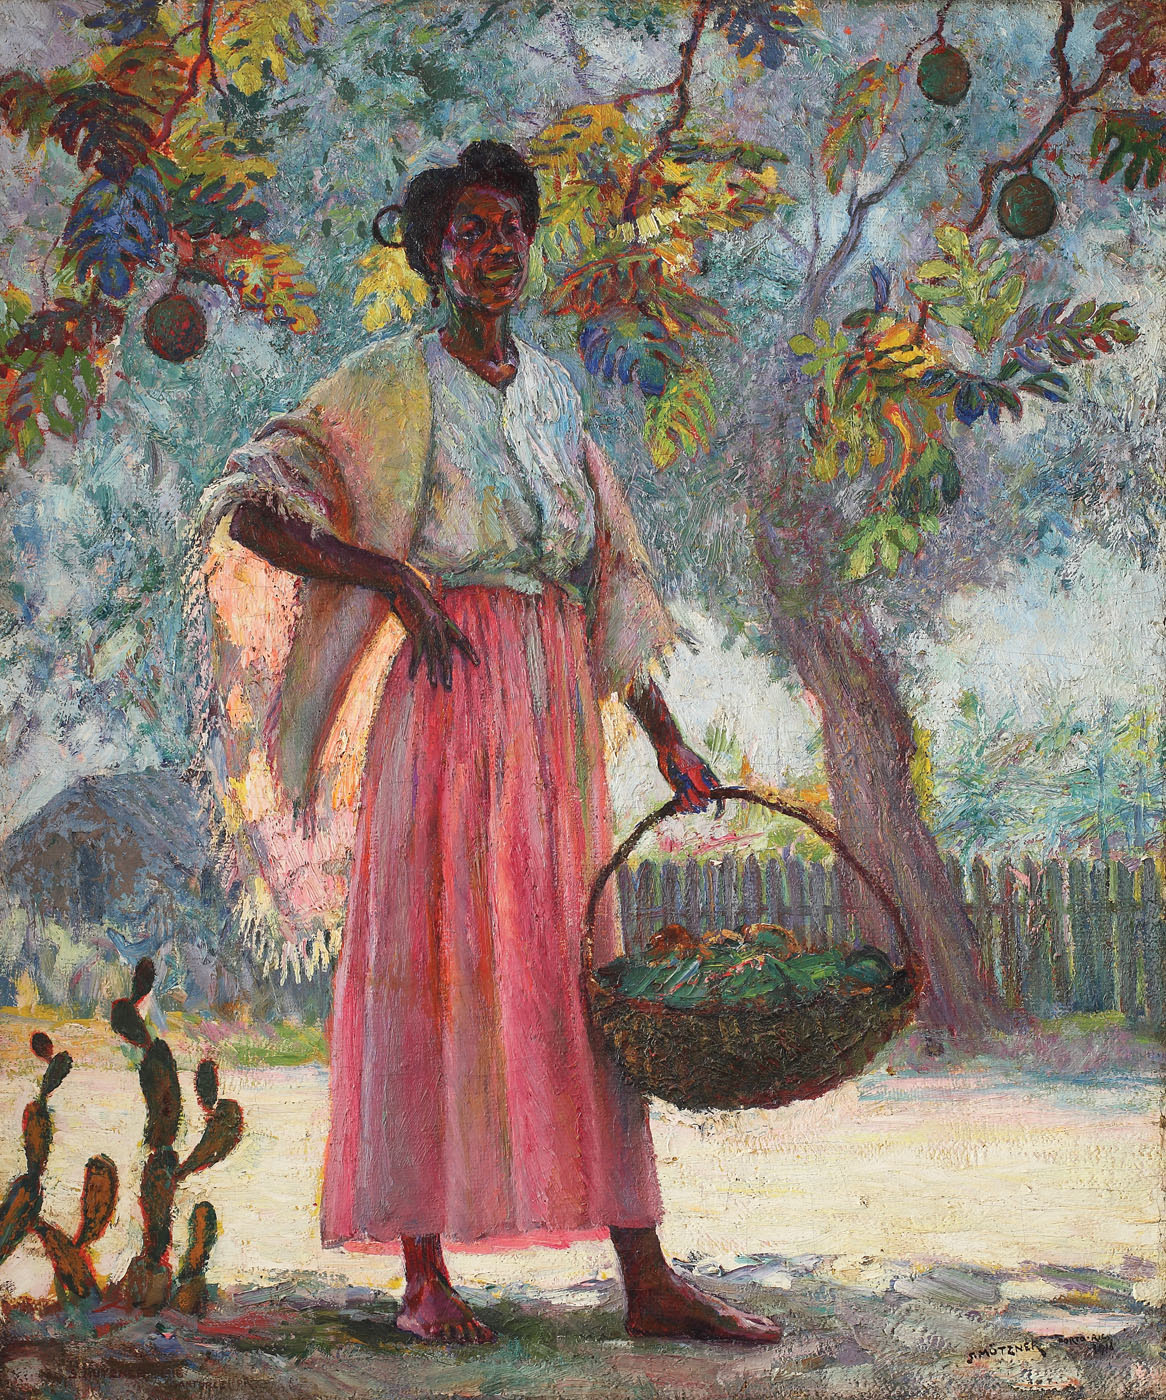 The Fruit Seller [1916], private collection